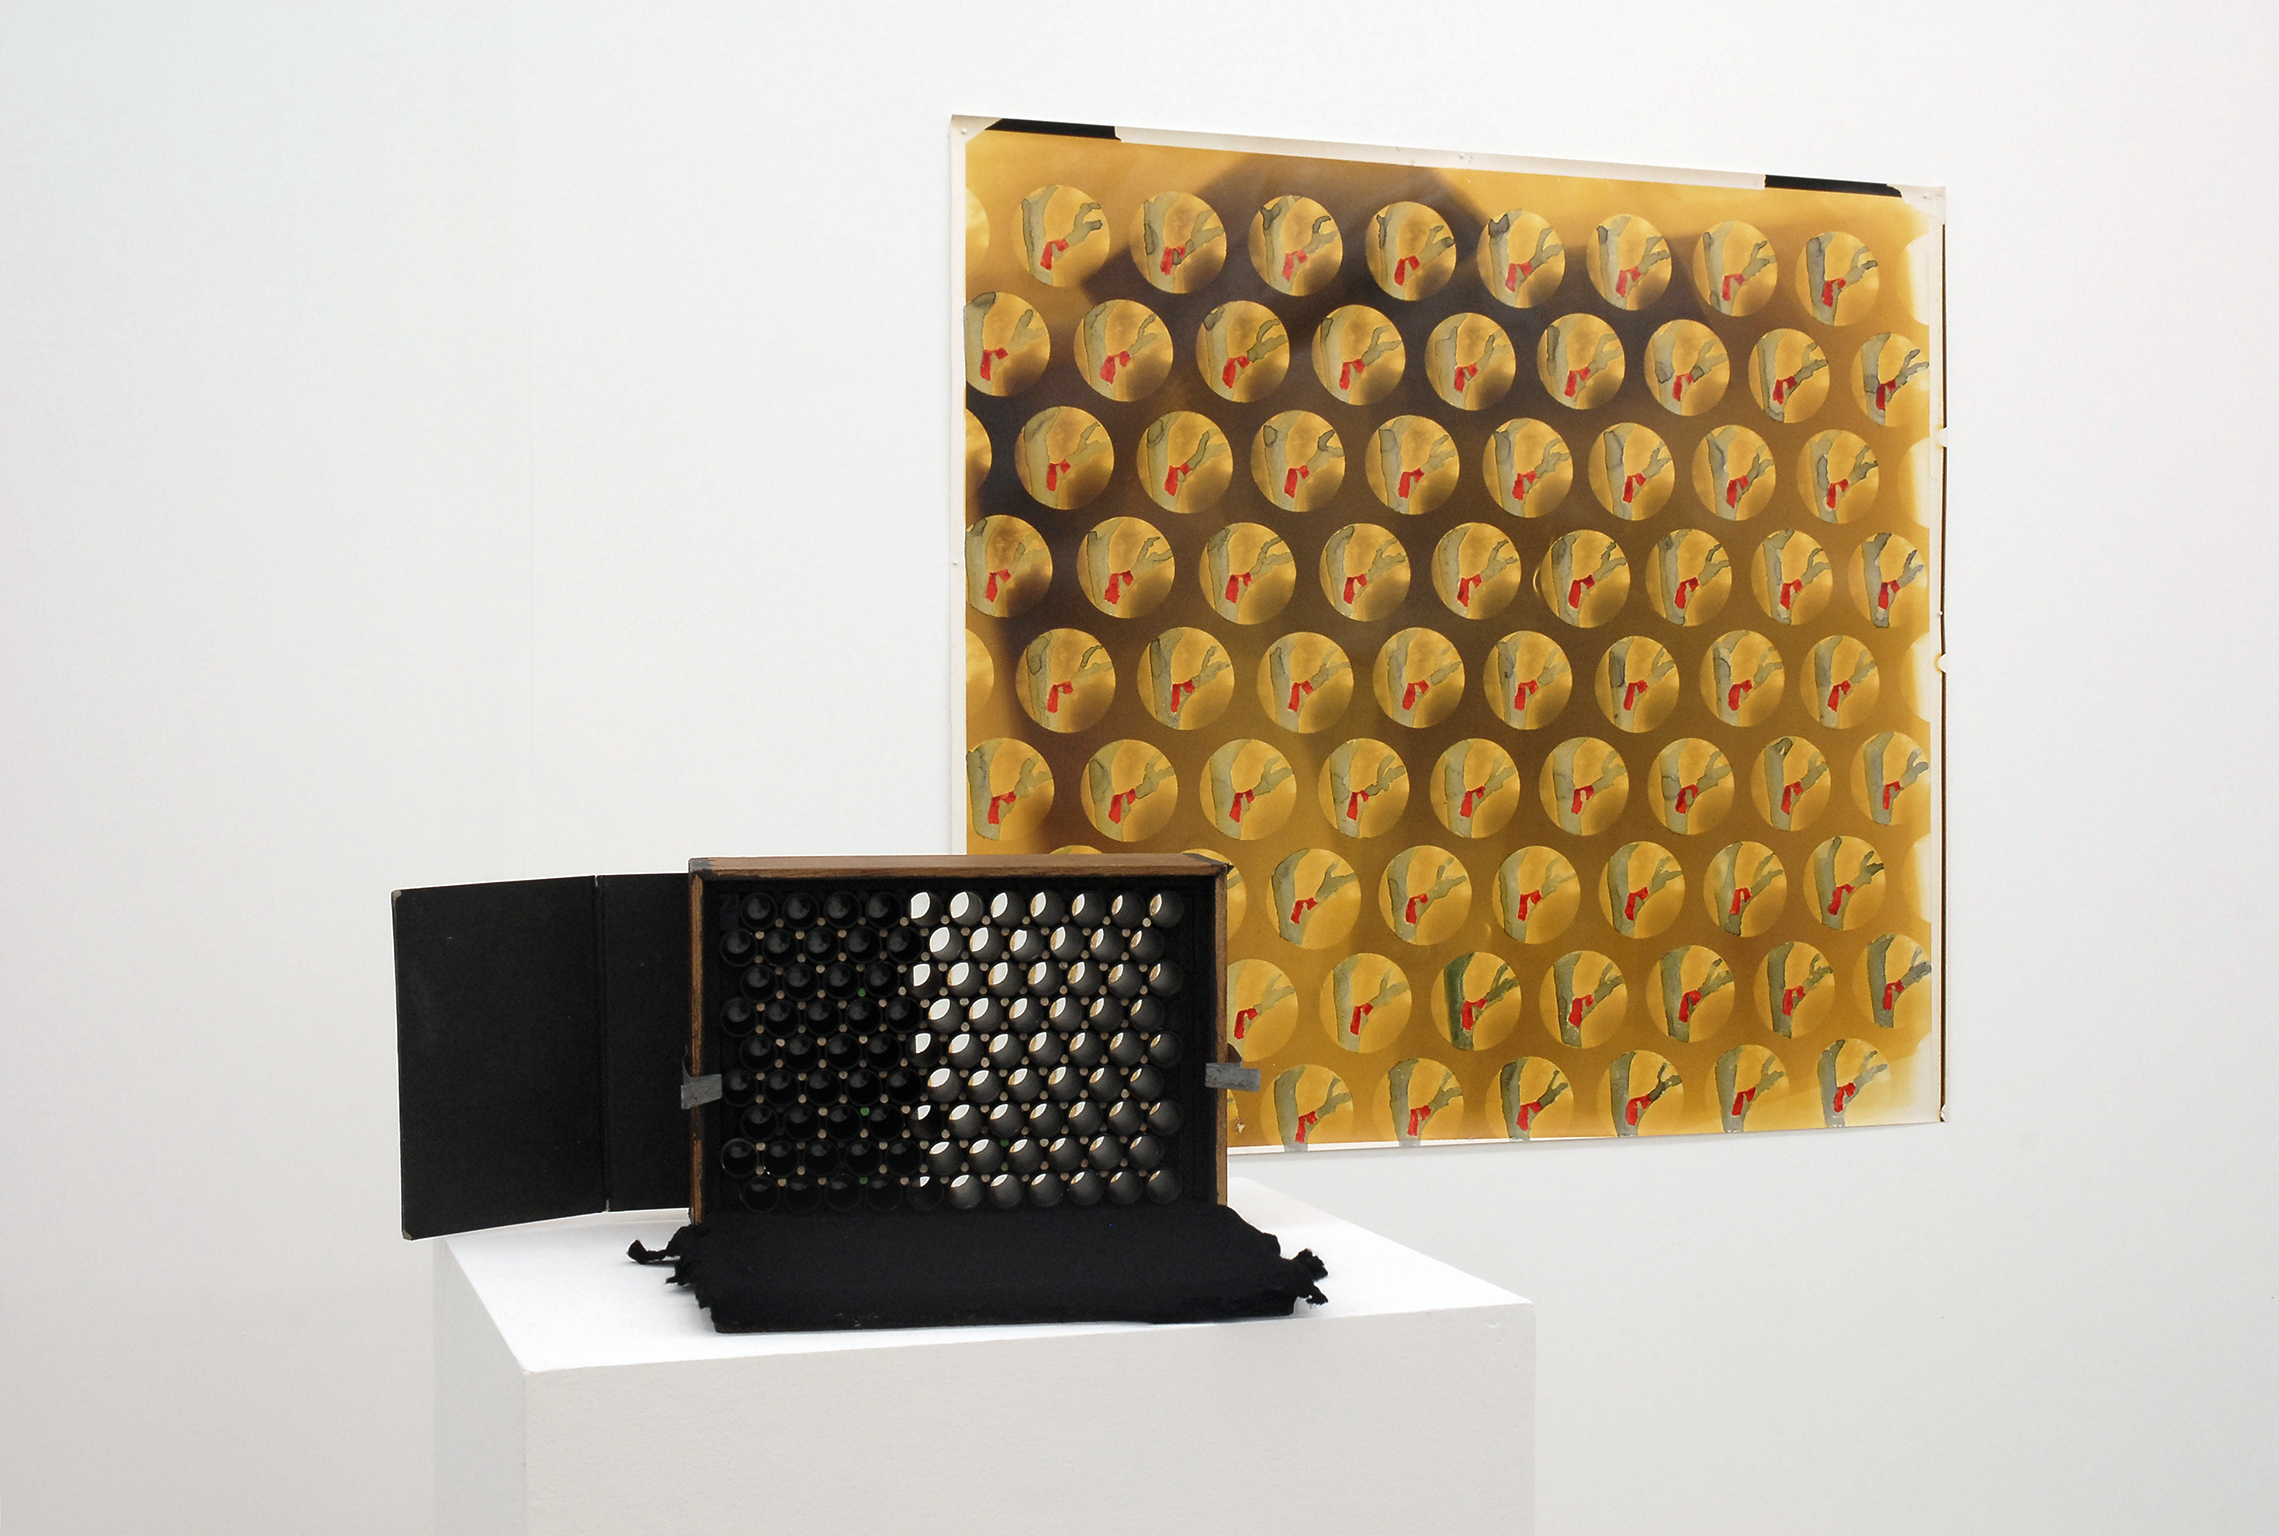 Jerry Pethick, Array Camera, 1988, Harvest Moon, 1988–1993, mixed media, dimensions variable by